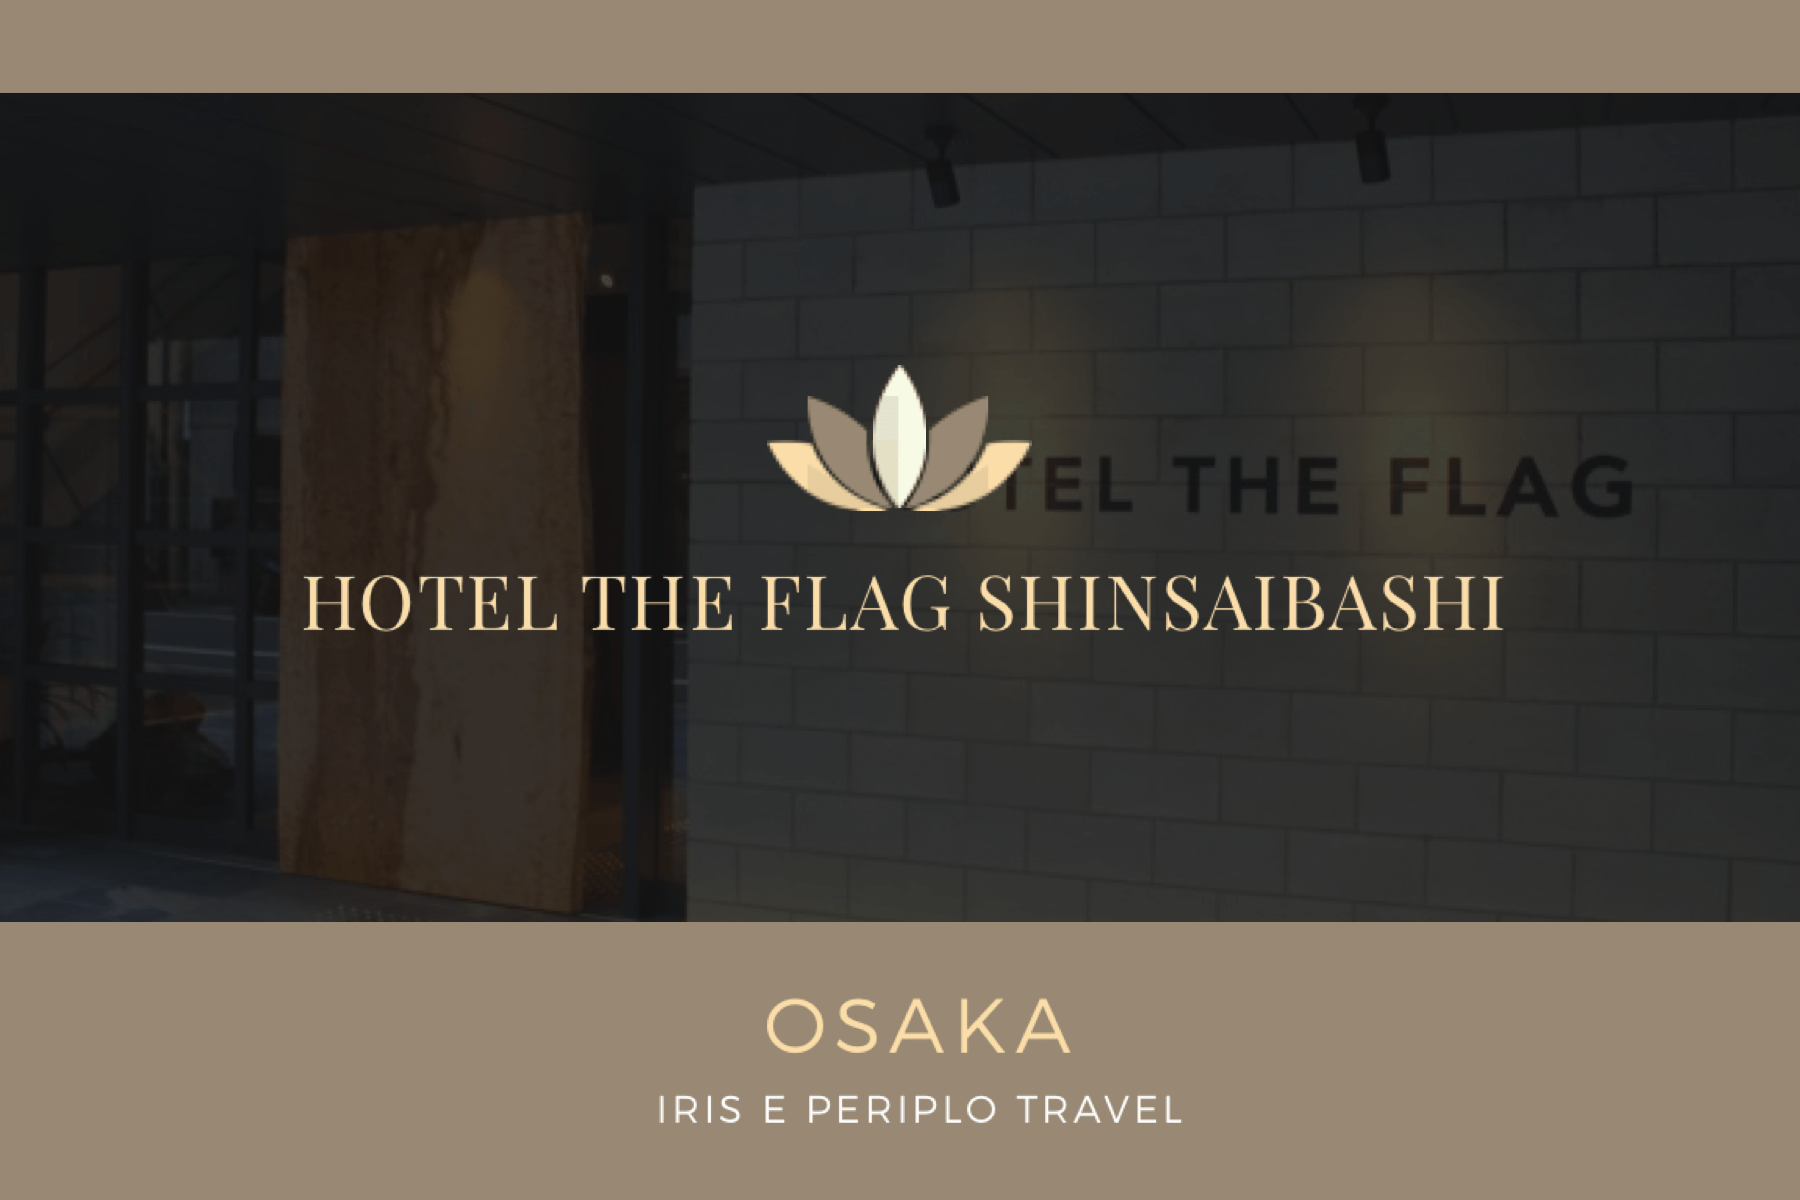 Hotel THE FLAG Shinsaibashi